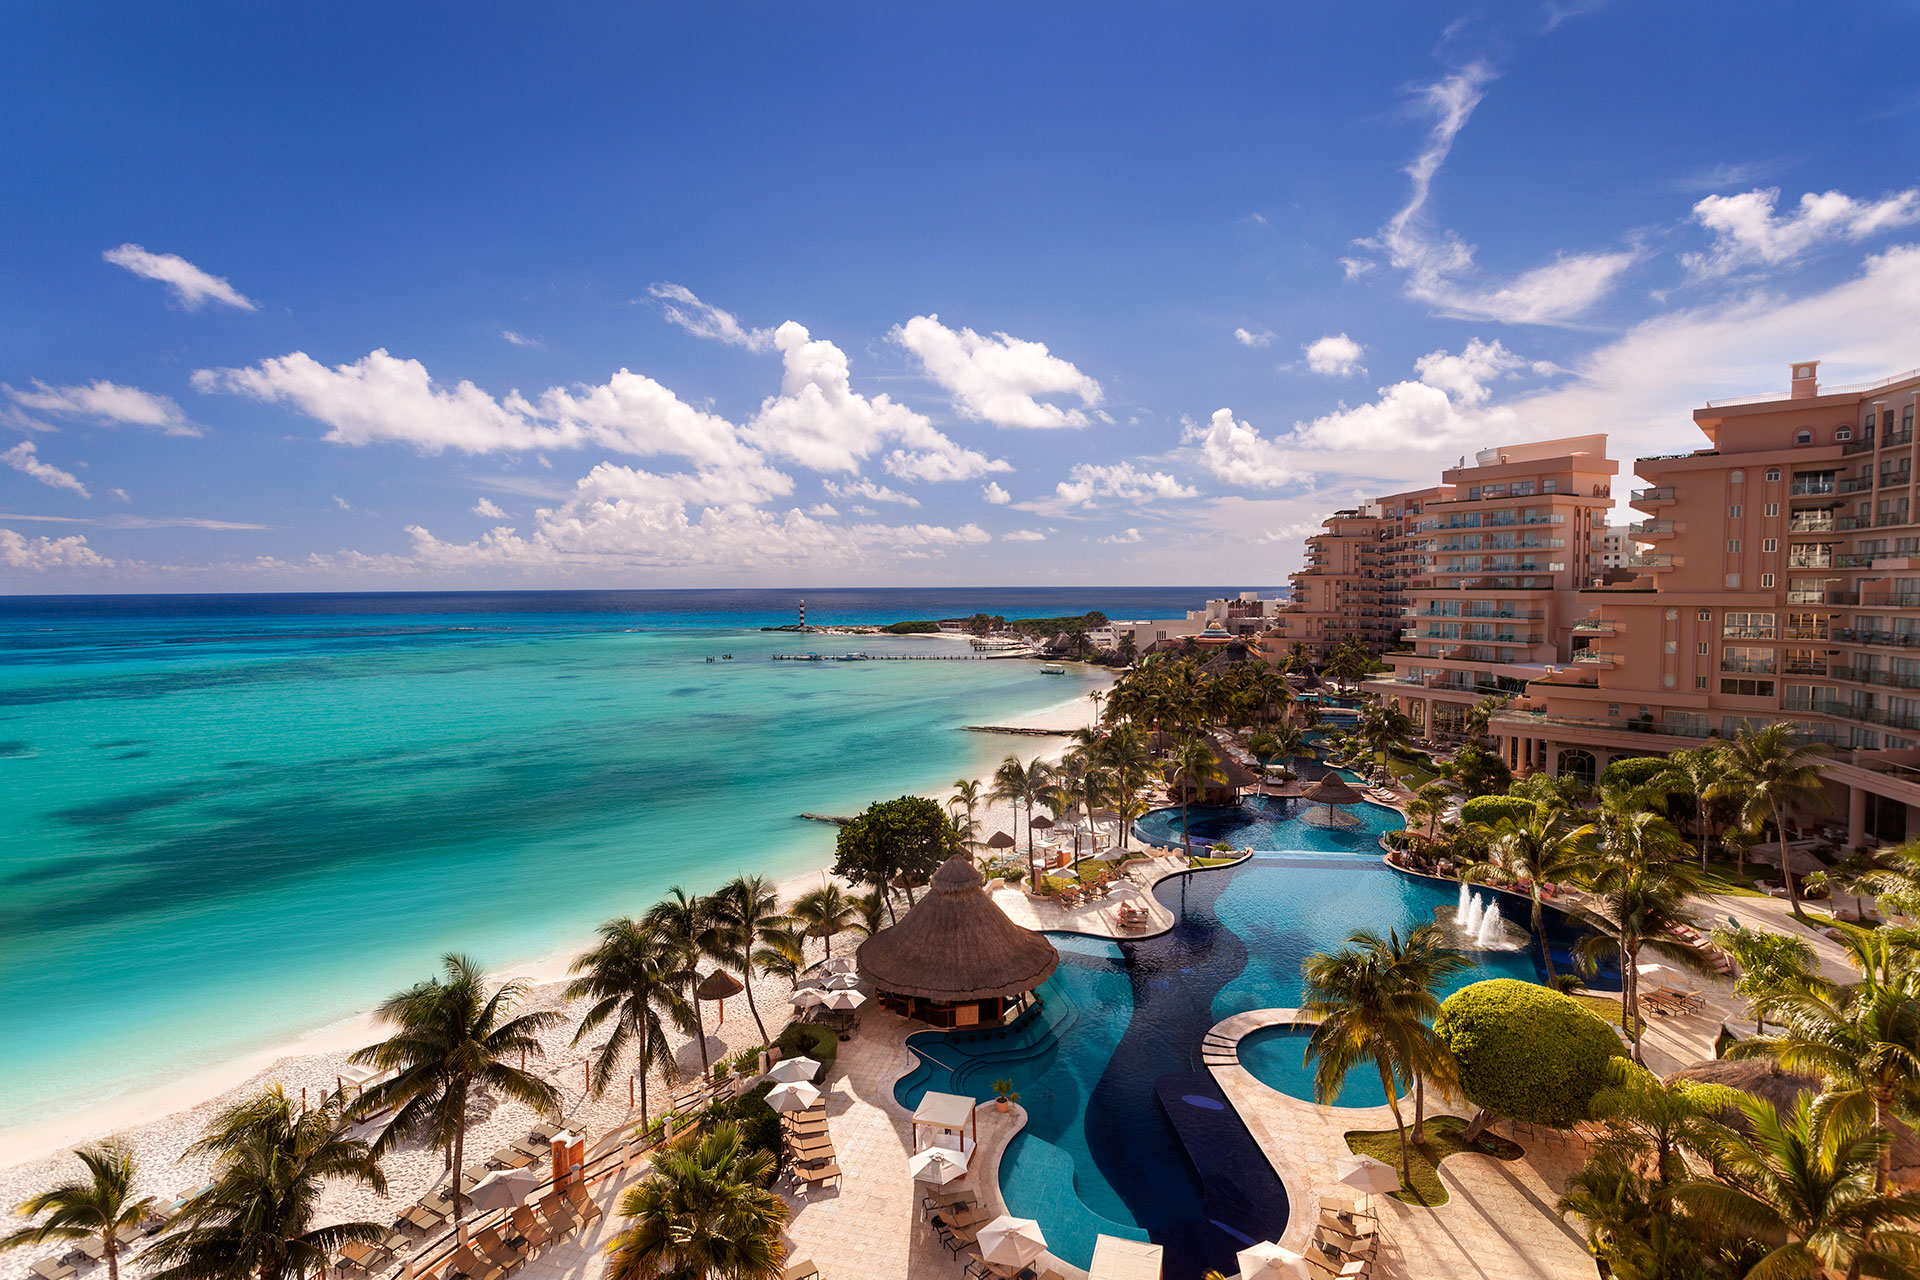 Grand Fiesta American Coral Beach Cancun Resort & Spa